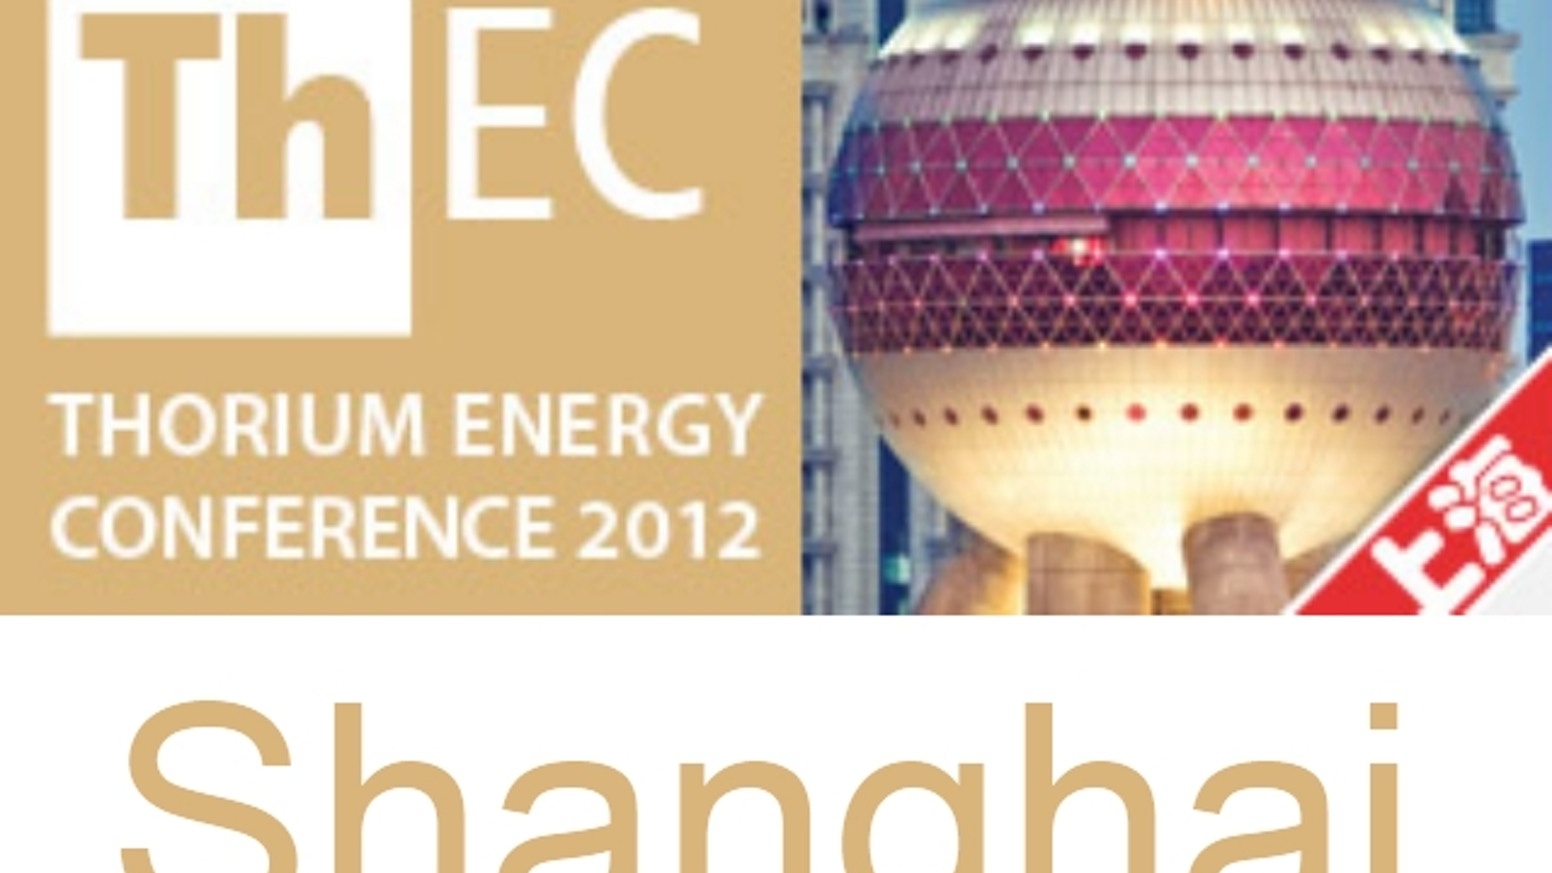 Improve upcoming documentary on Liquid Fluoride Thorium Reactor with footage from Thorium Energy Conference 2012 in China.